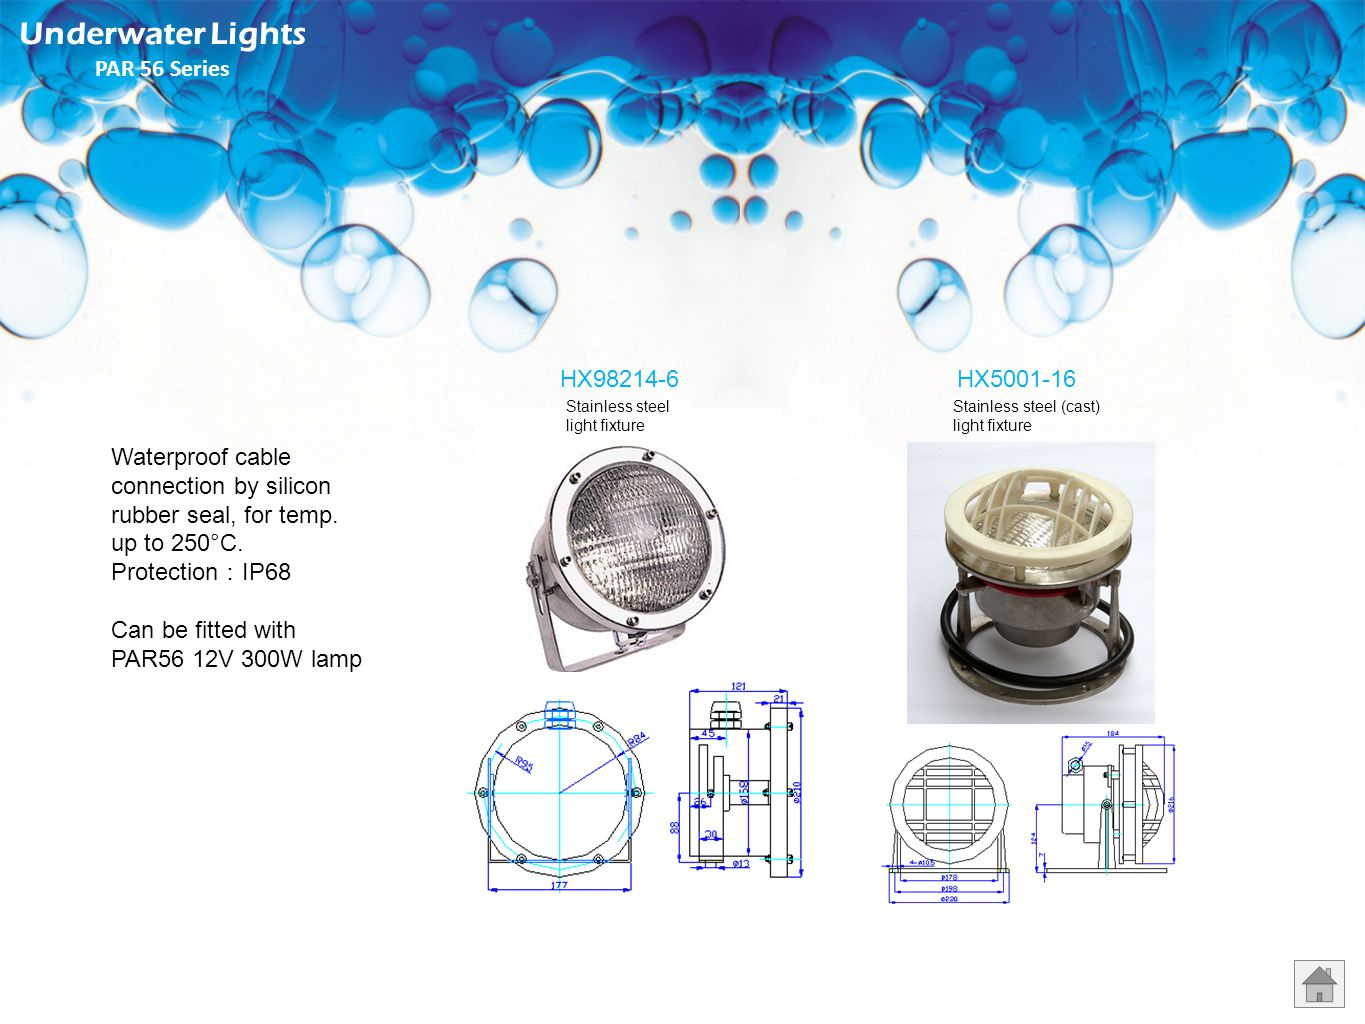 HXB38-1HXB38-2 With additional glass cover Underwater Lights PAR38 Series Light fixture: Stainless steel Waterproof cable connection by silicon rubber